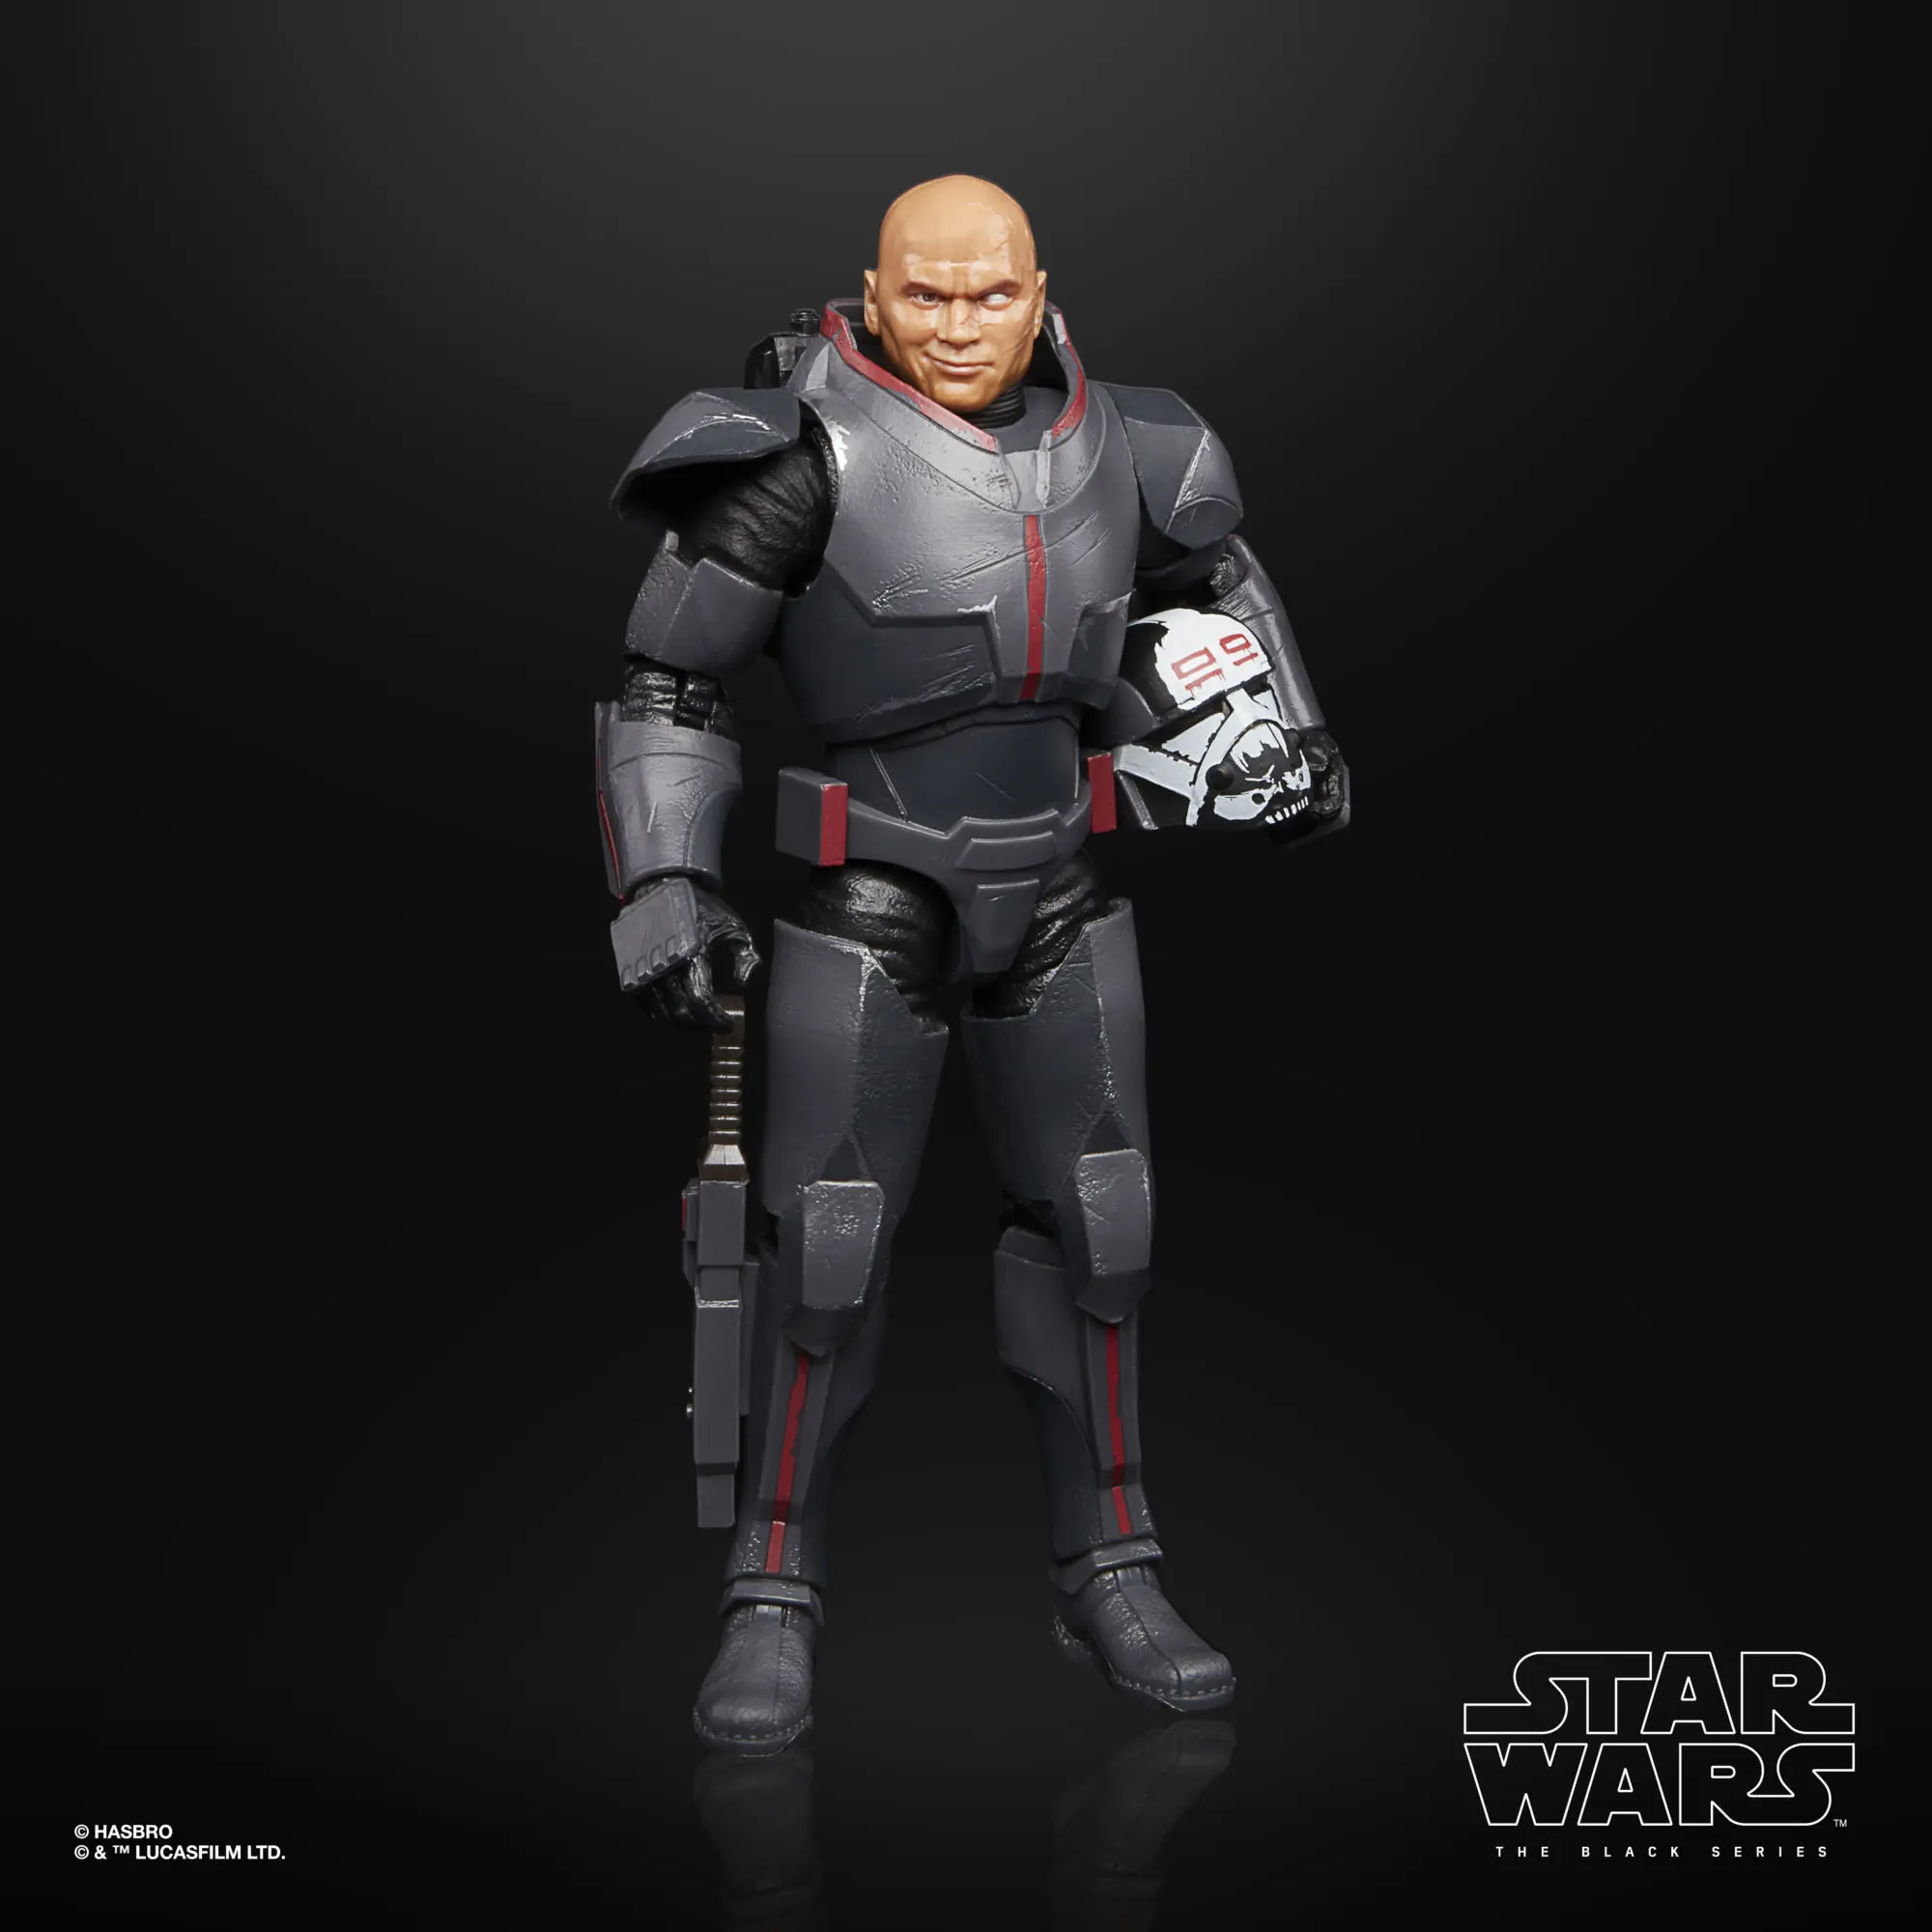 Star Wars - The Black Series - The Bad Batch - Wrecker Deluxe Action Figure